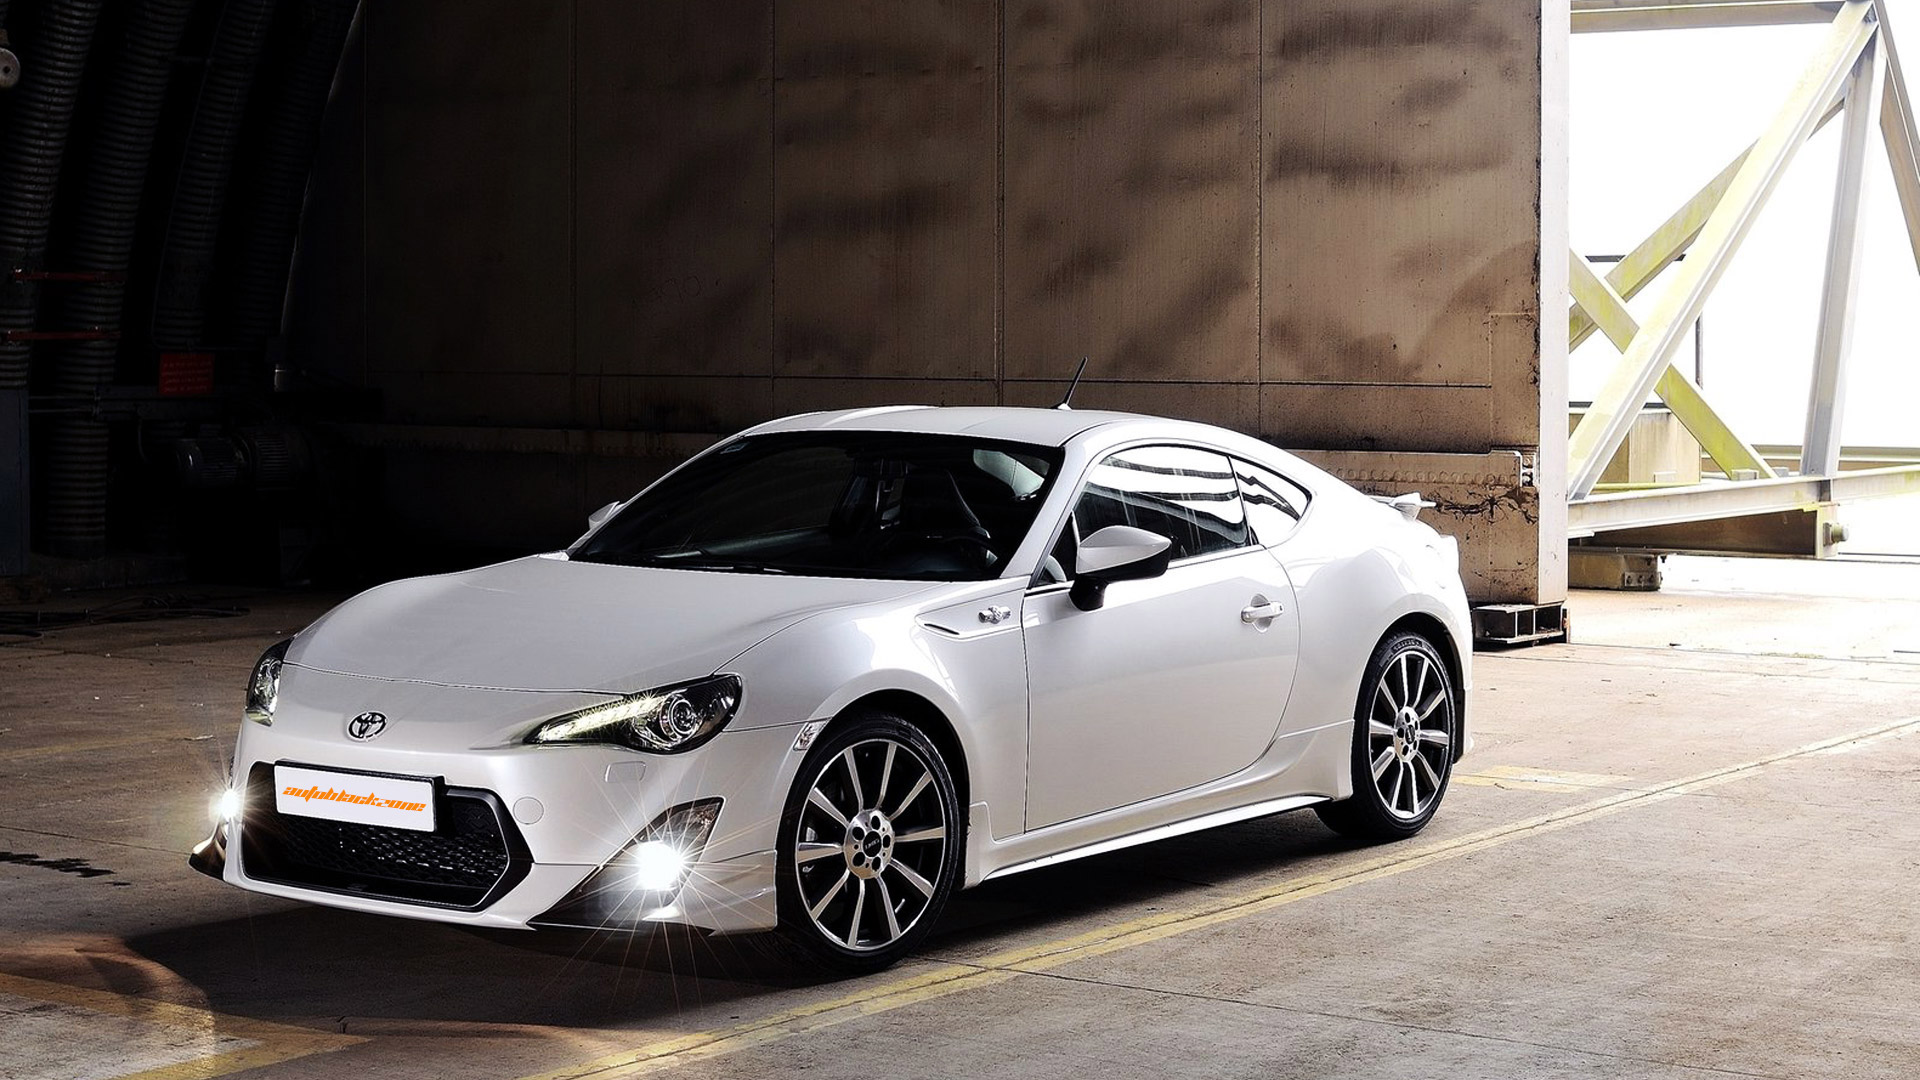 Toyota GT 86 Wallpapers High Quality Download 1920x1080